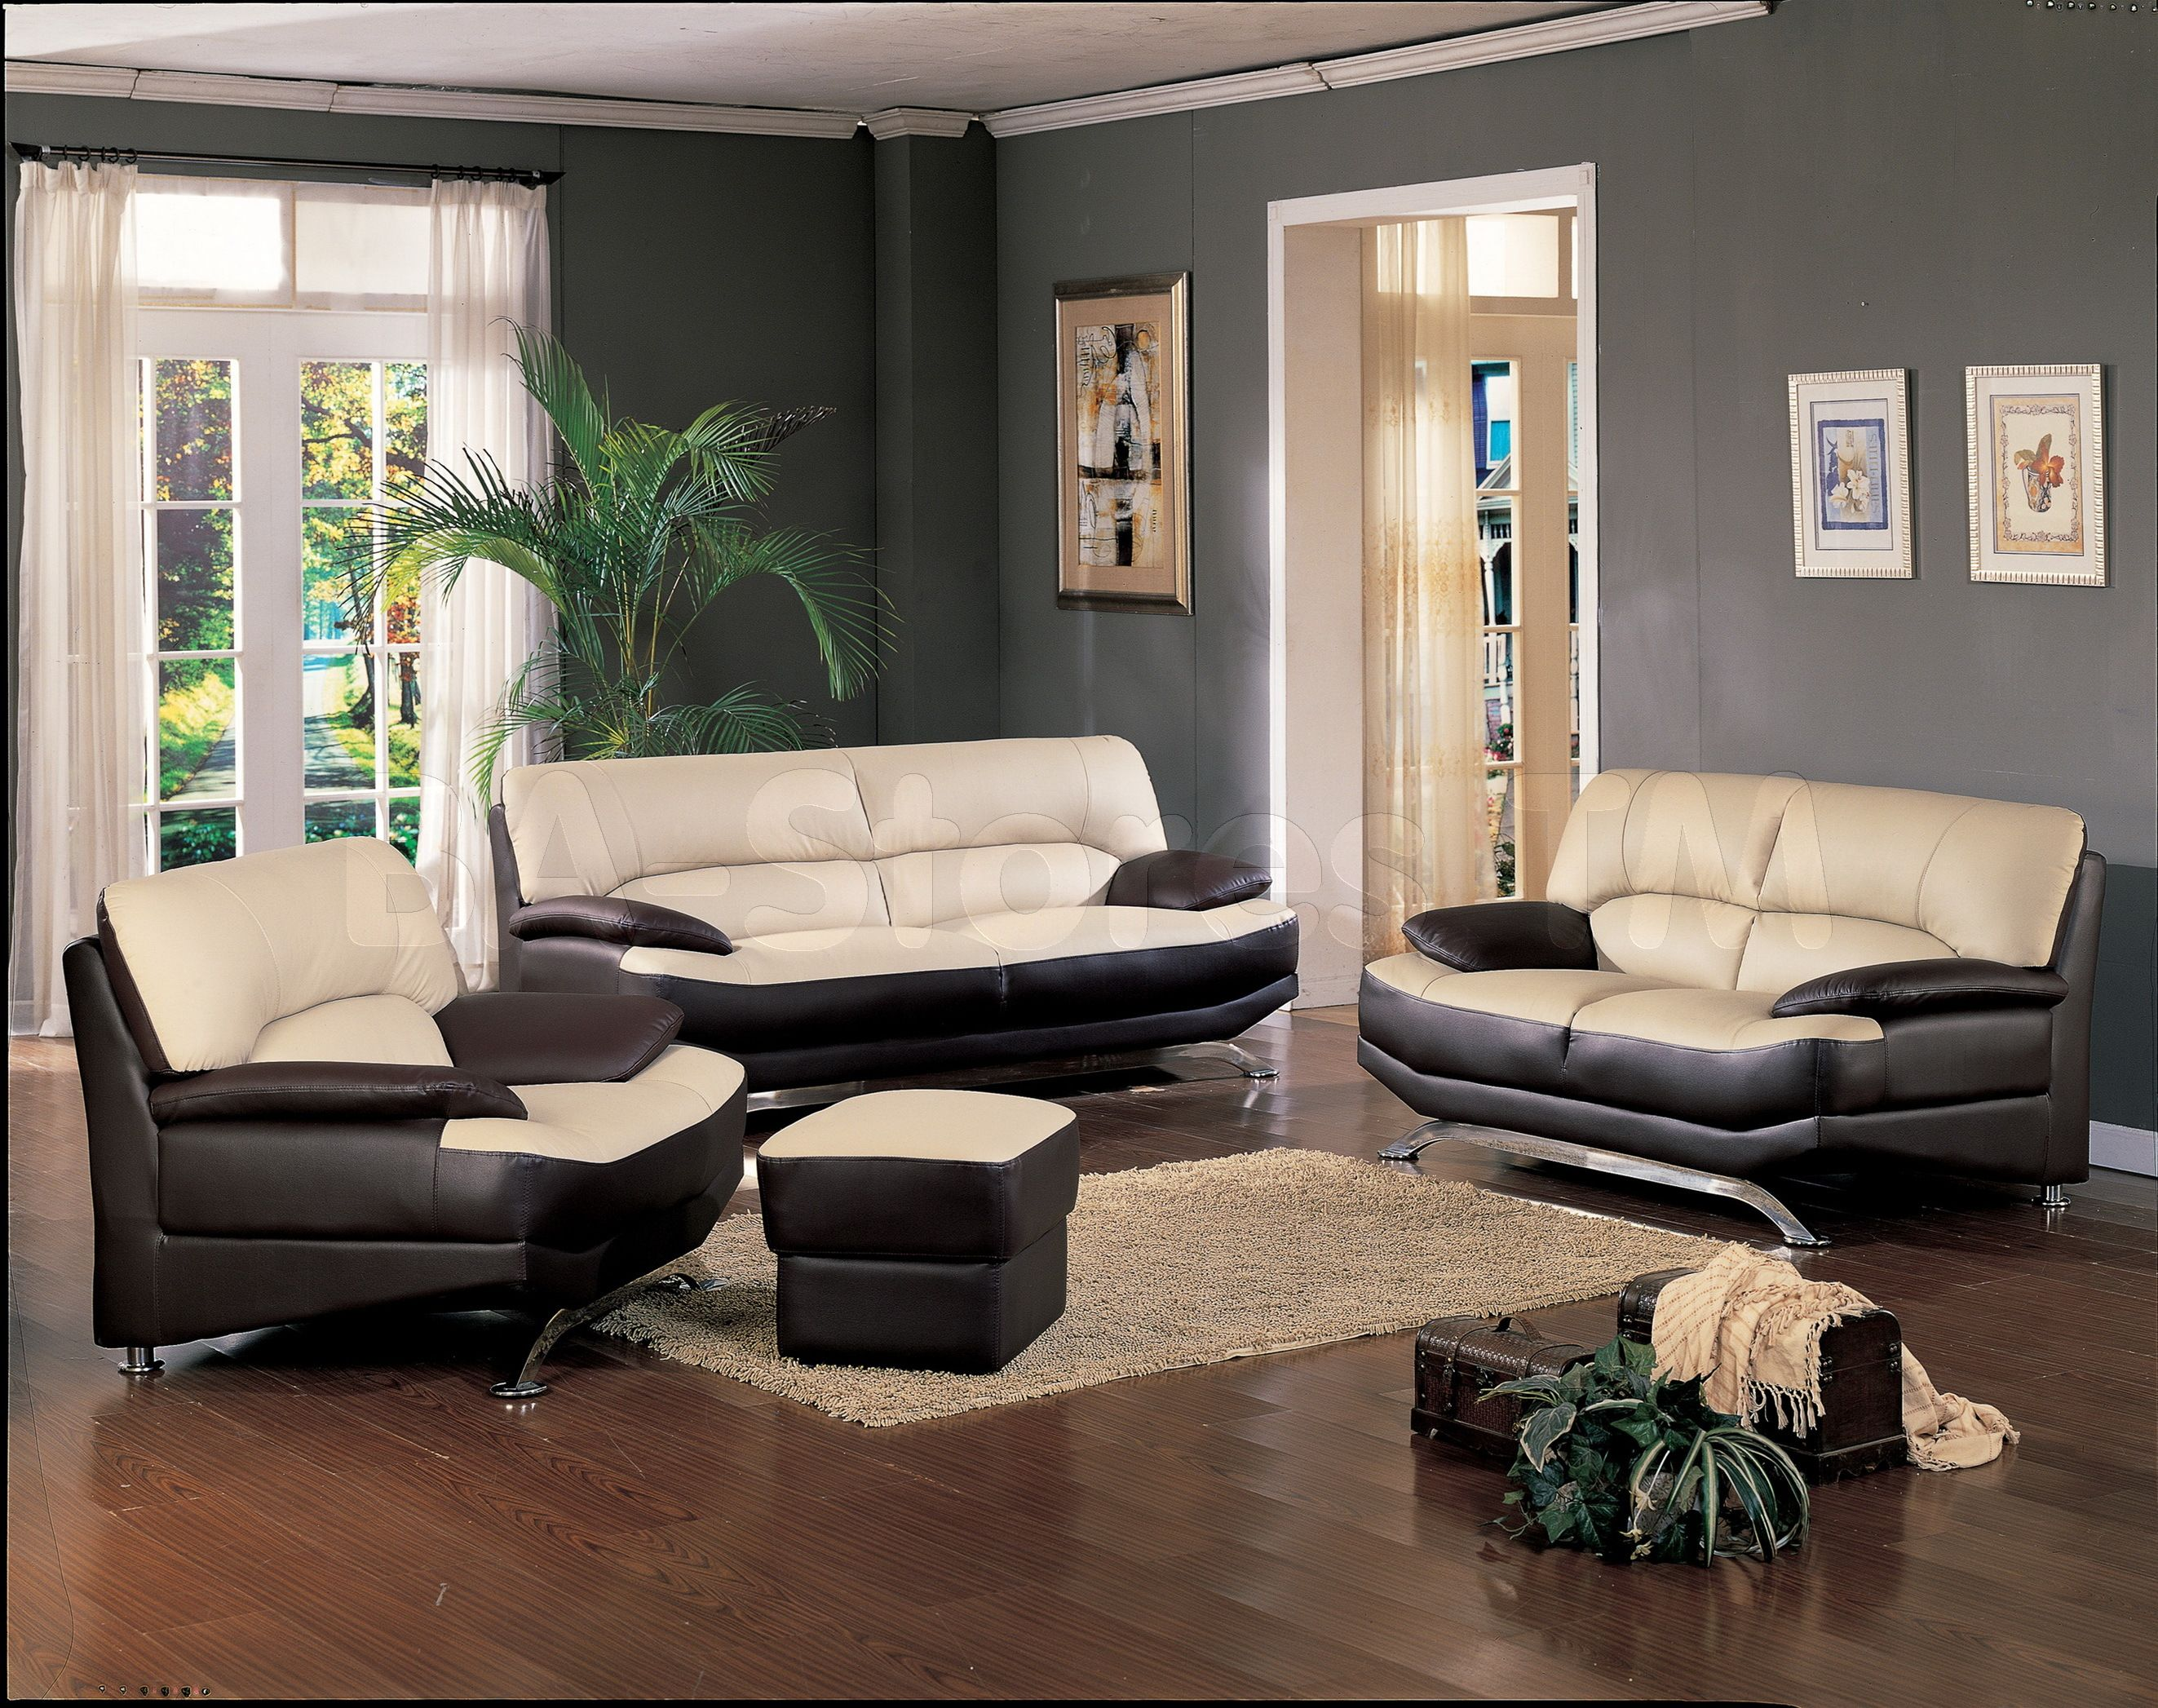 White Furniture Living Room Decorating Black And Cream Leather Couch On Dark Brown Wooden Floor Completed